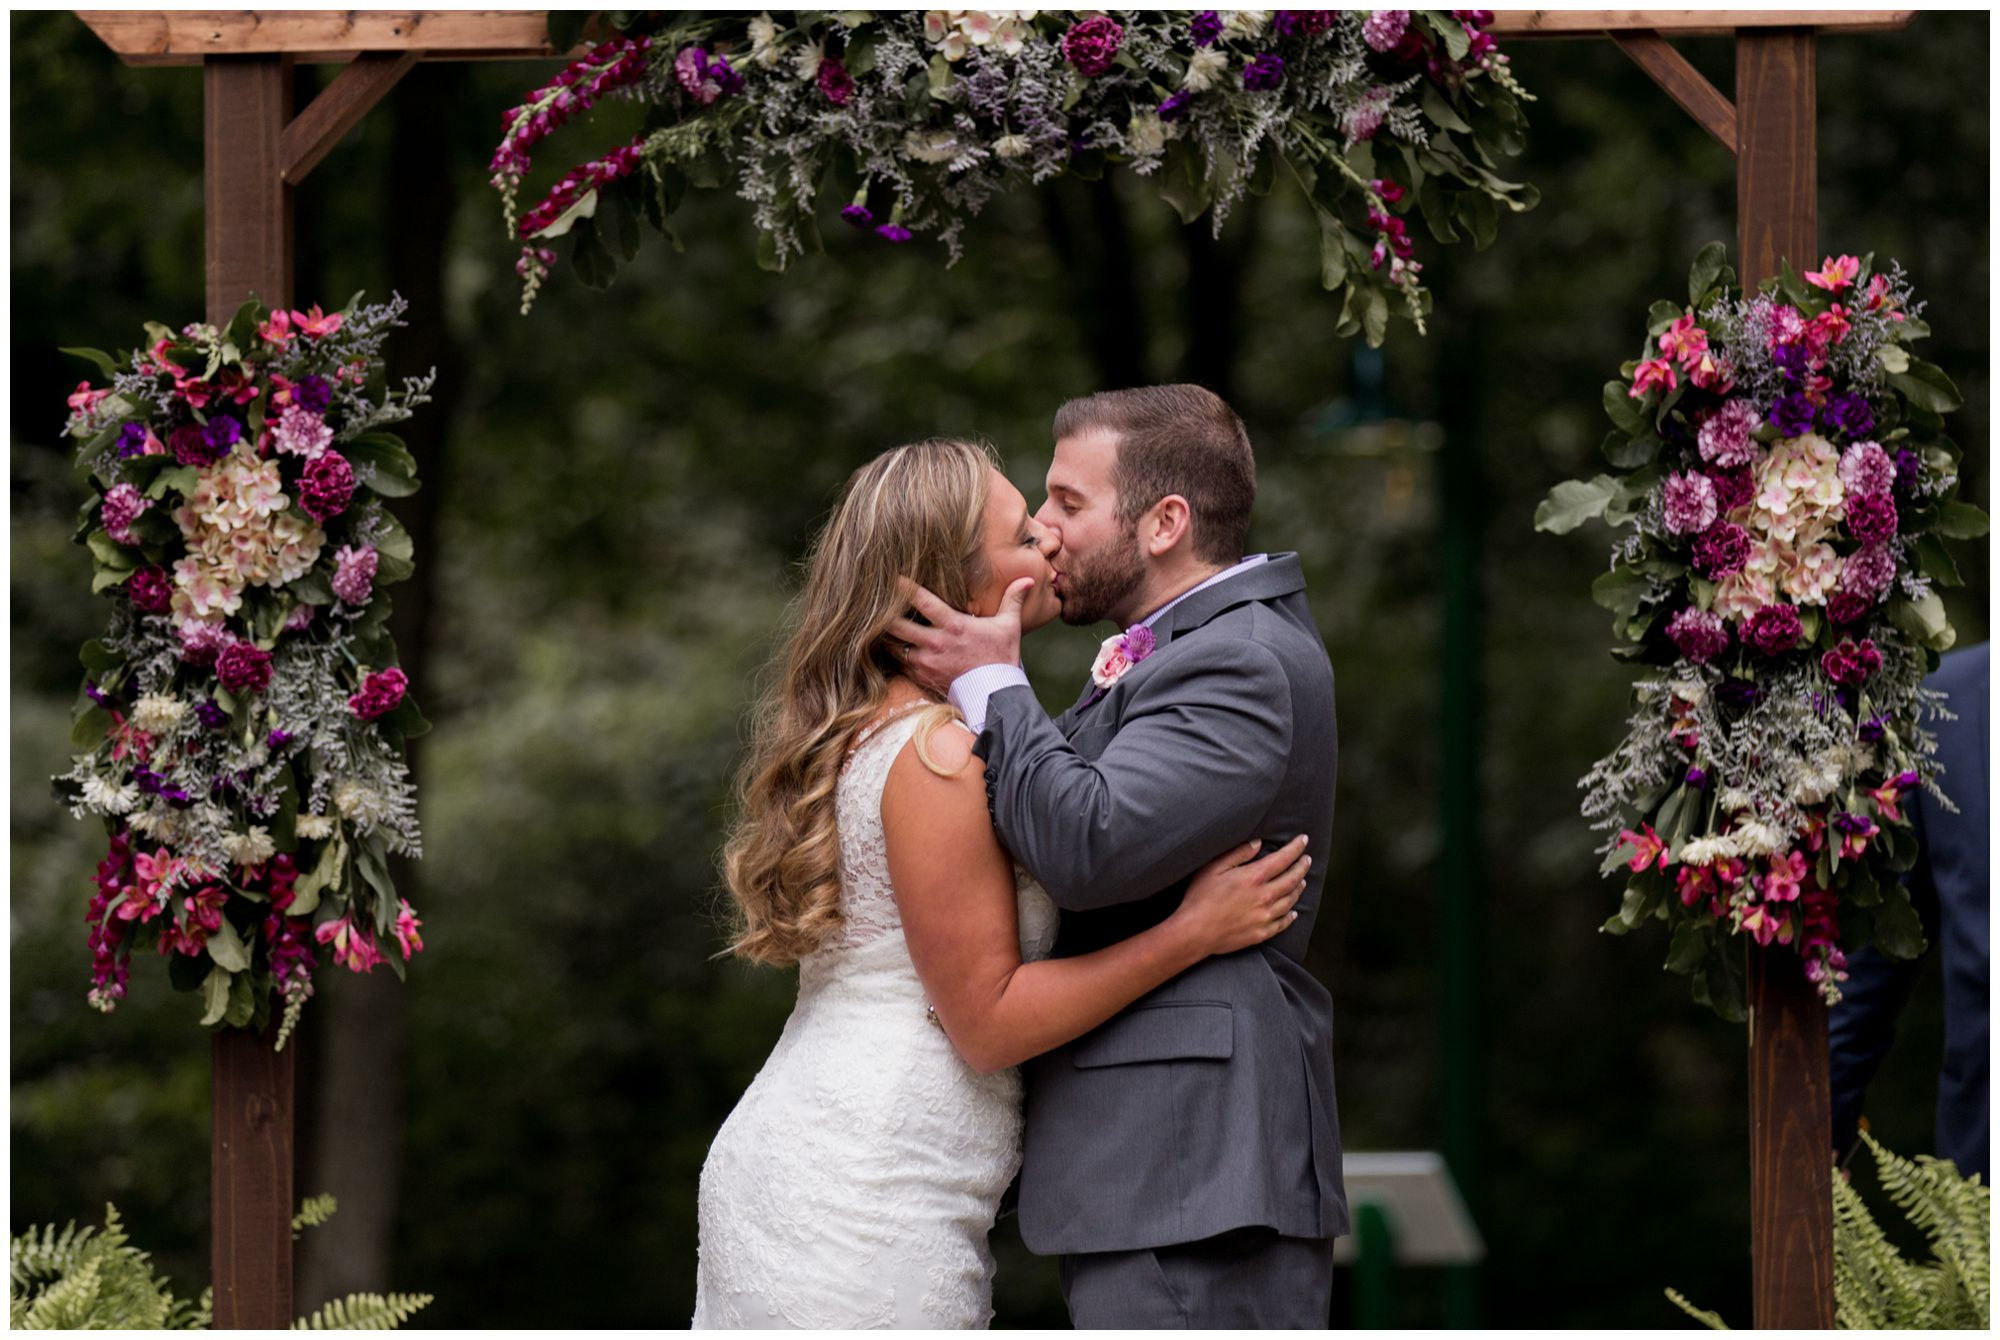 Wabash Indiana wedding ceremony at Charley Creek Gardens with bride and groom's first kiss